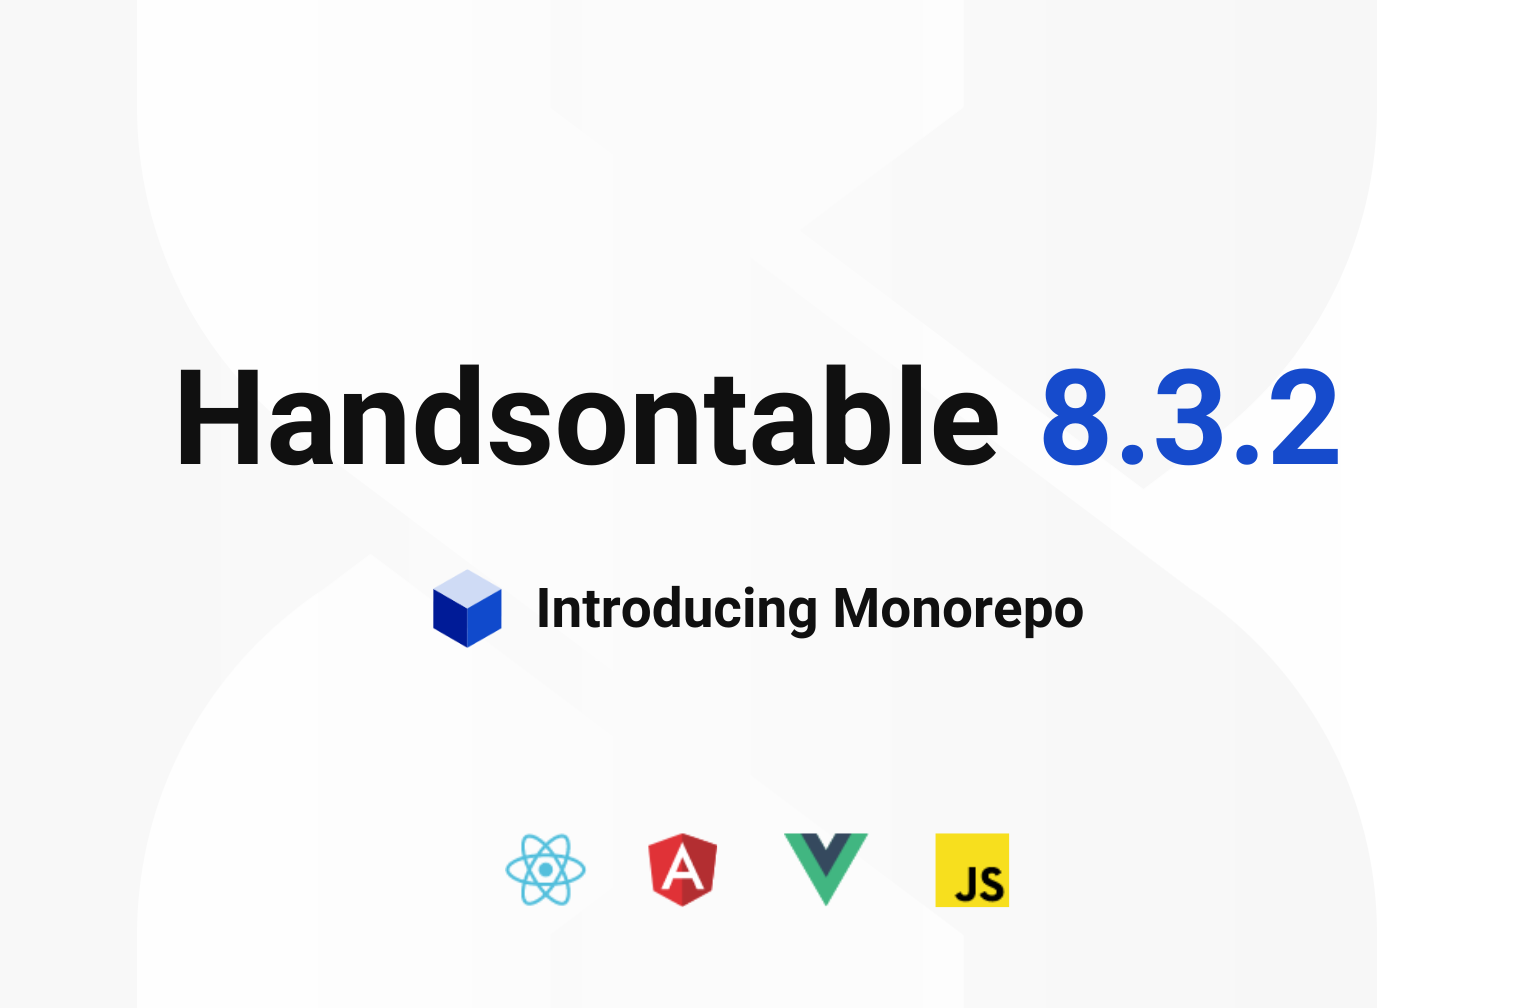 Handsontable 8.3.2 release